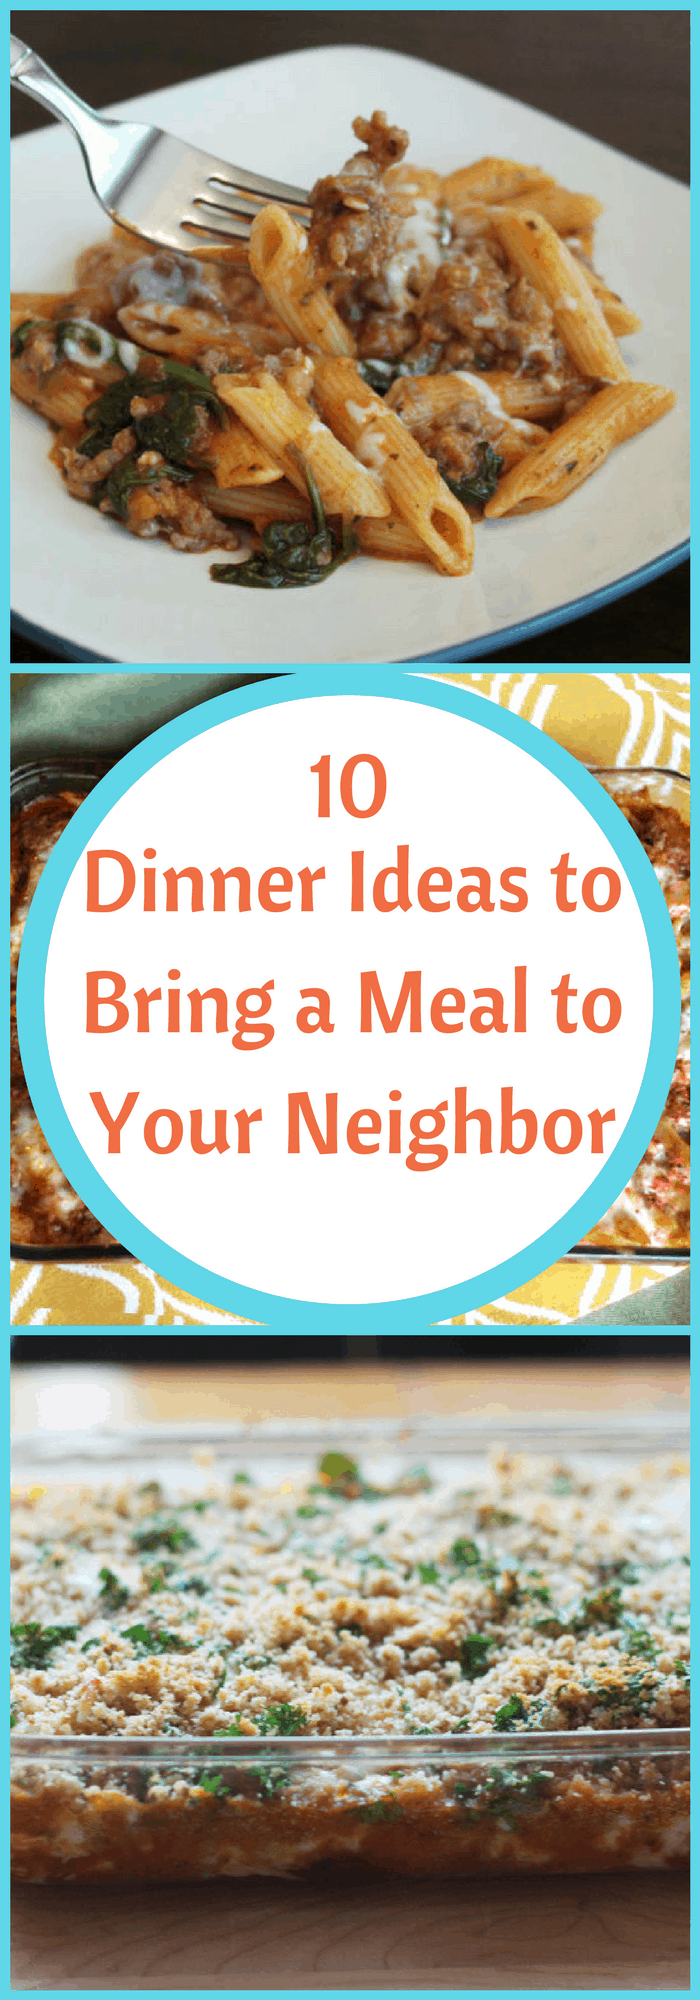 Dinner--10 Dinner Ideas to Bring a Meal to Your Neighbor--The Organized Mom